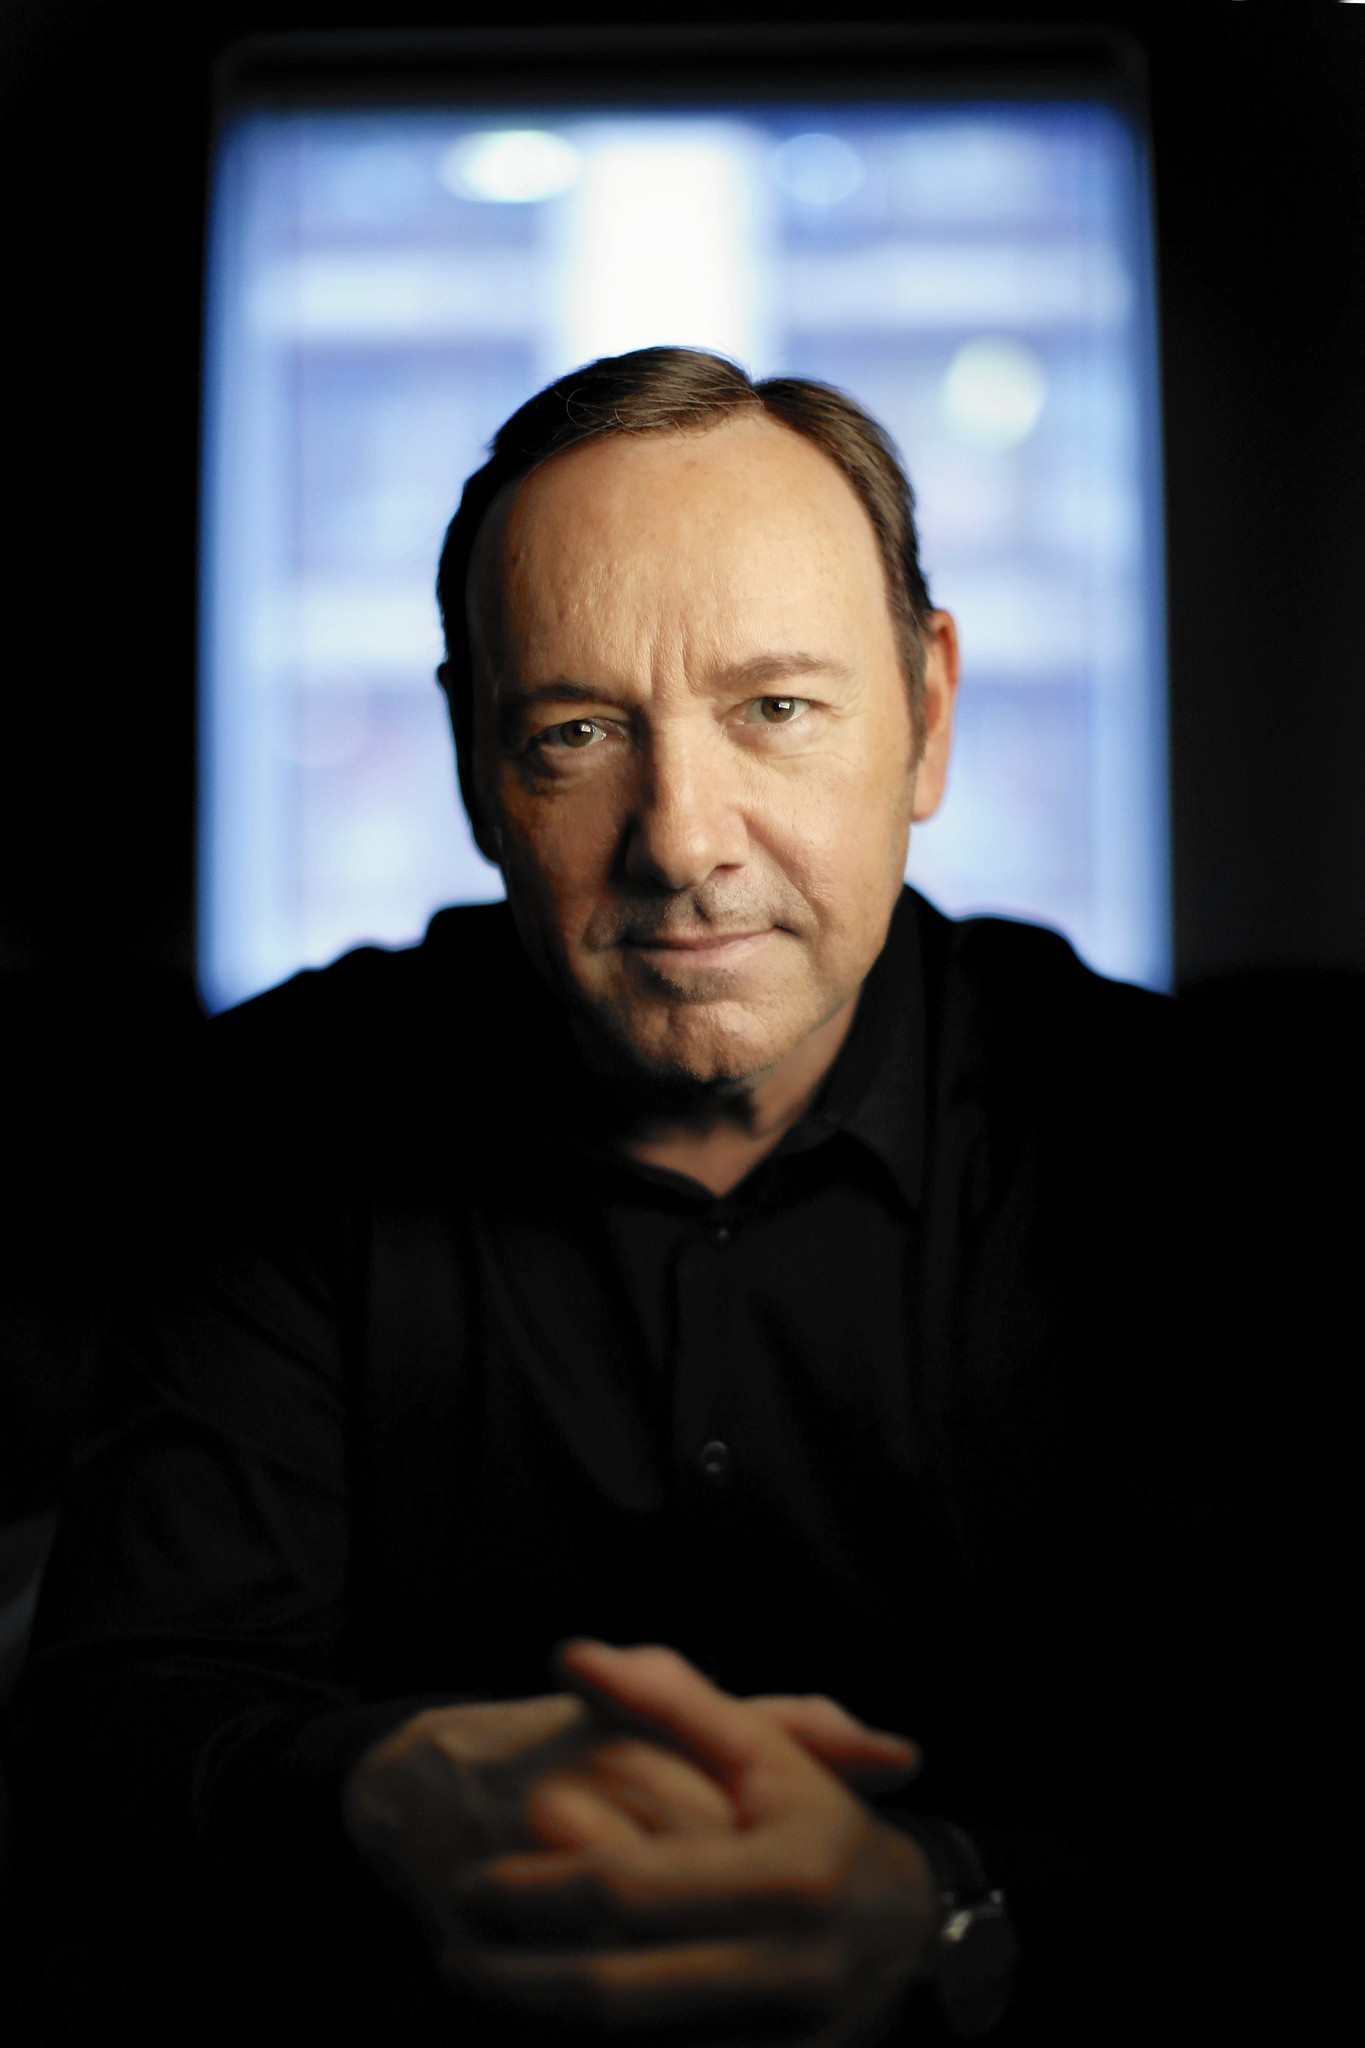 Kevin Spacey For mobile